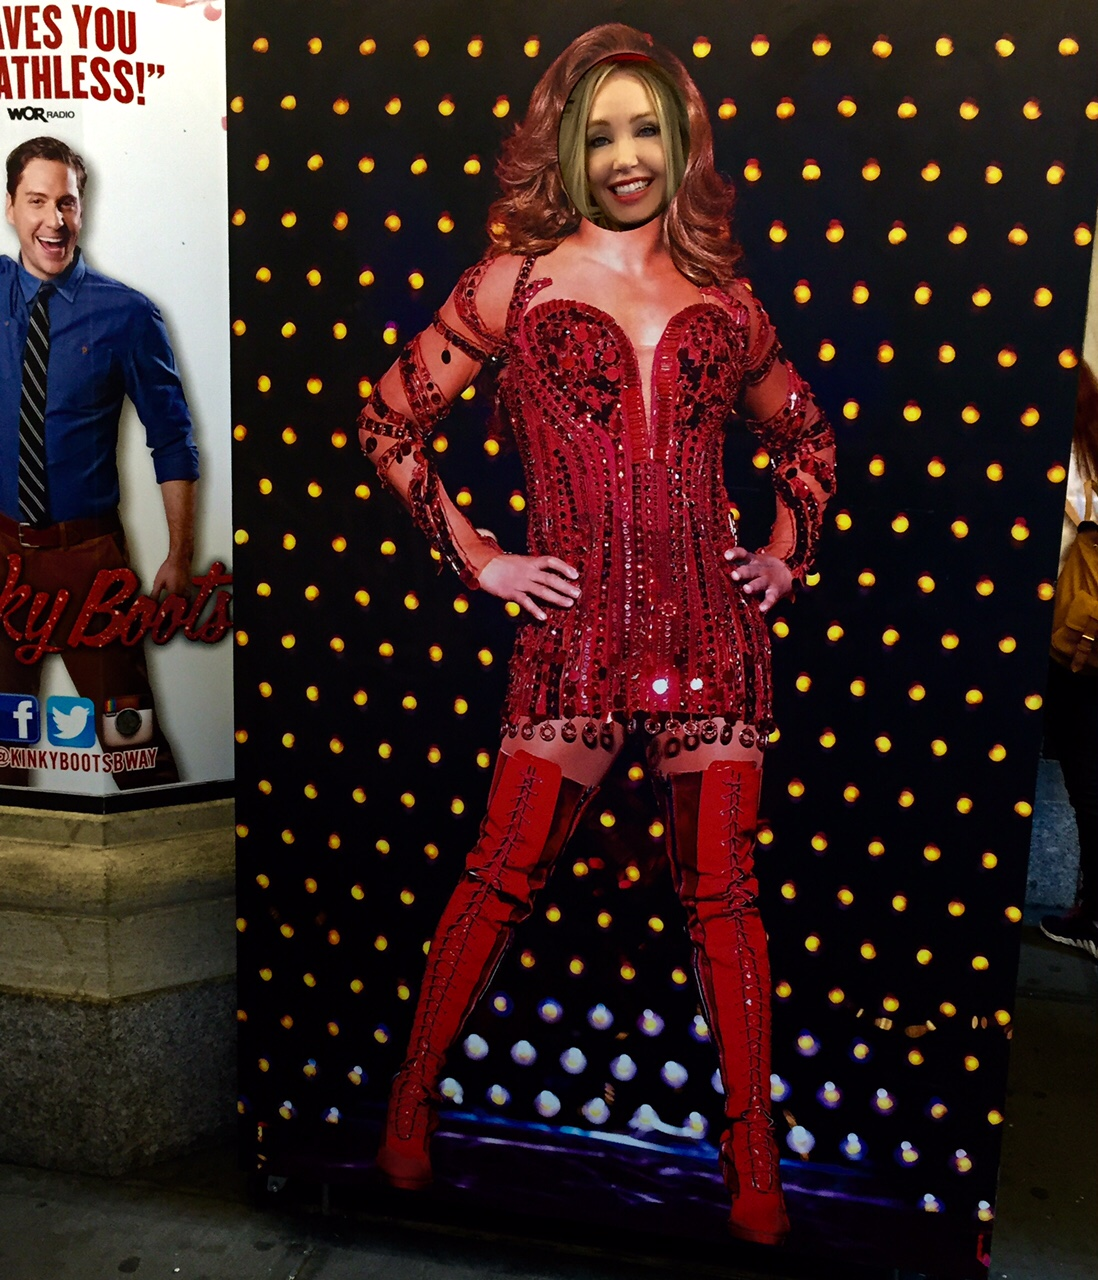 kinky boots nyc, what to do in nyc